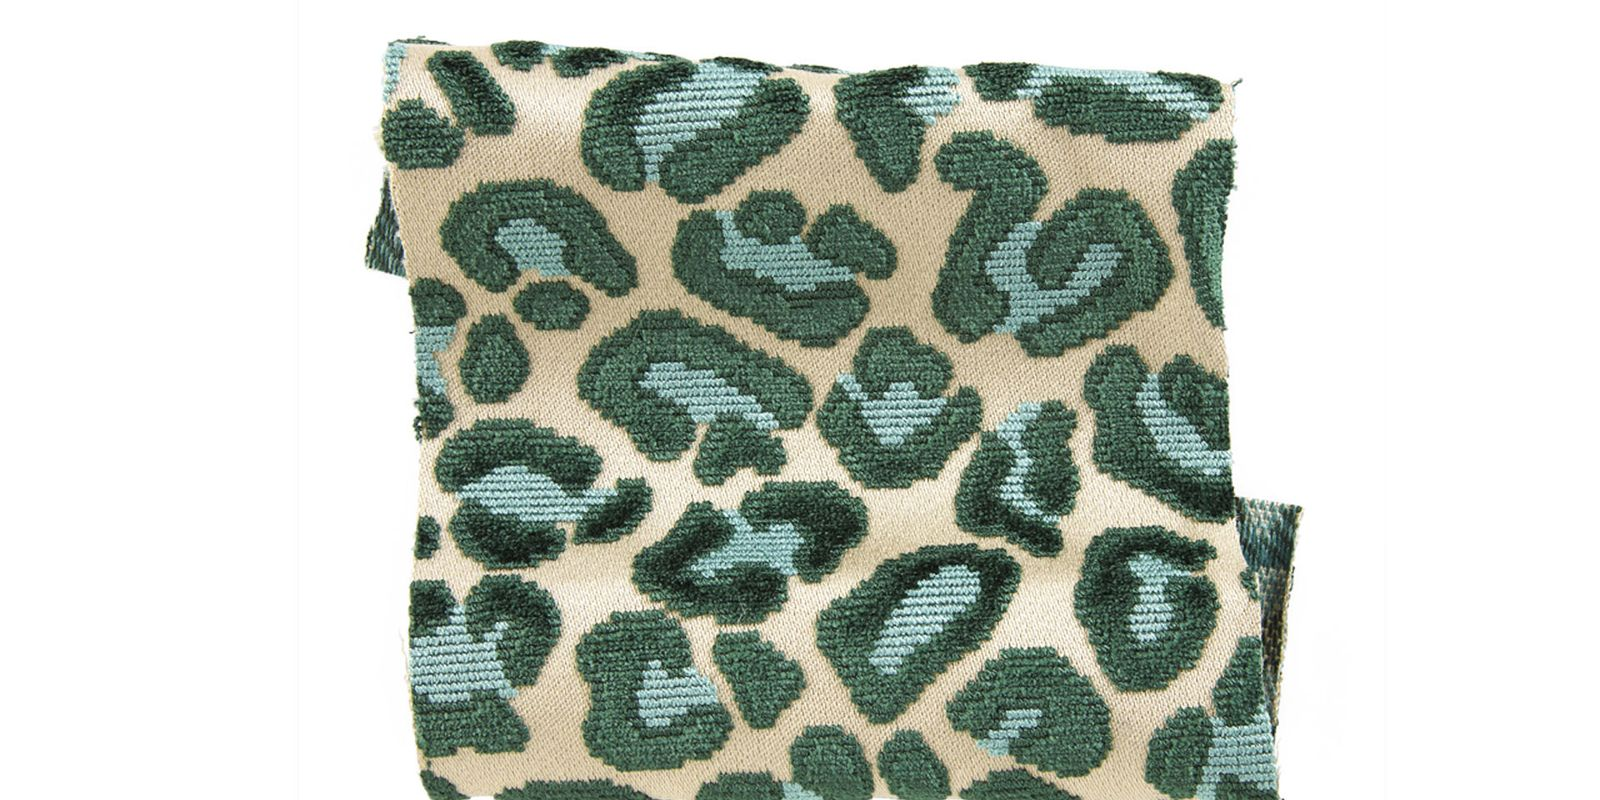 Leopard Print Fabric Leopard Print Upholstery Fabric And